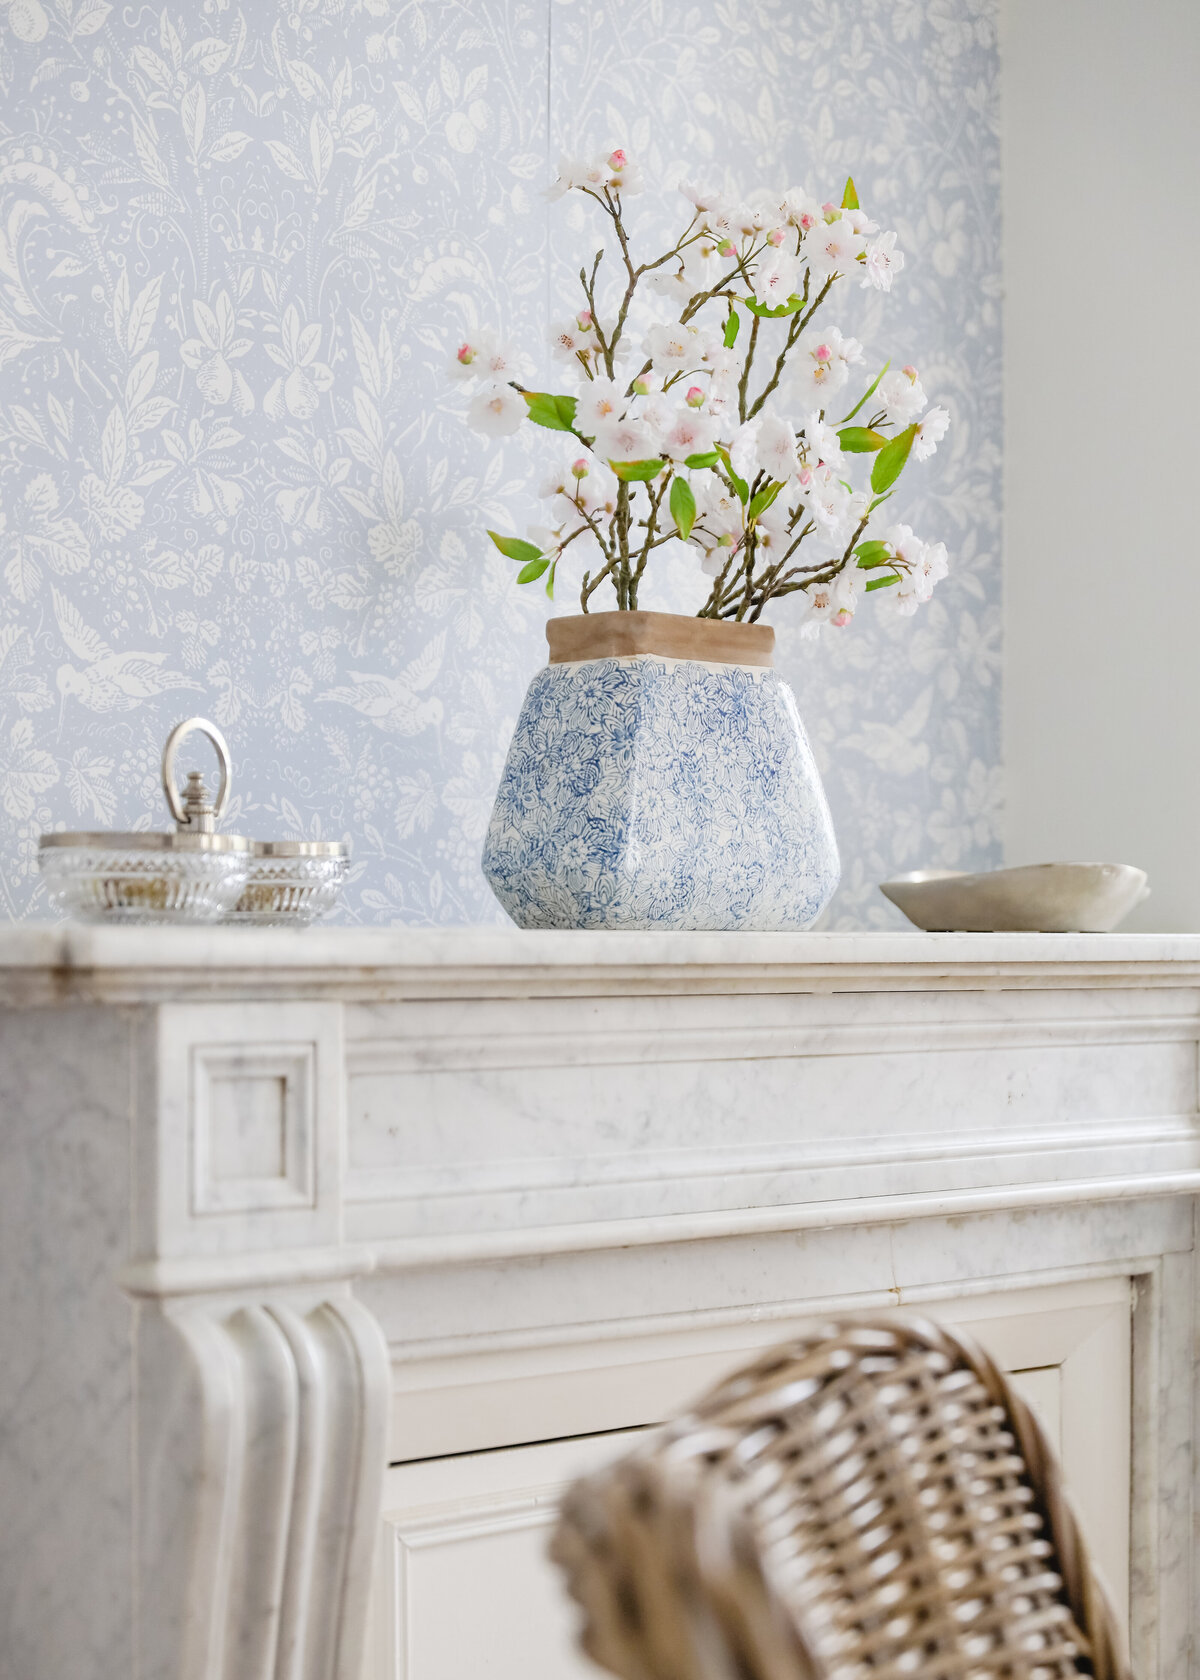 A patterned powder blue wall paper is behind a blue vase on a marble fireplace.